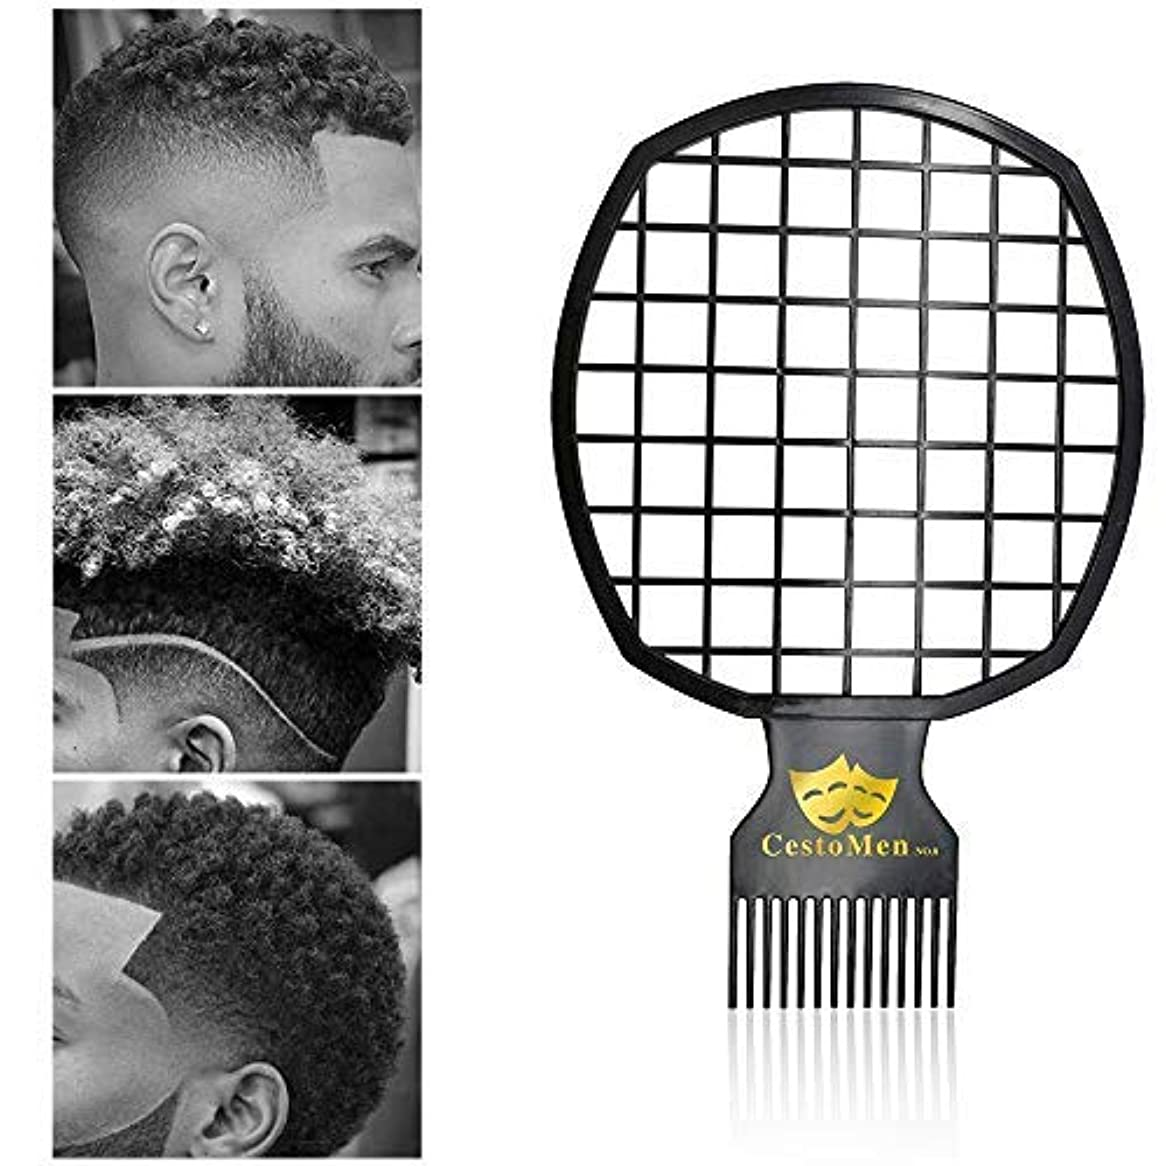 ホストトムオードリース公使館Afro Twist Comb Portable Two-In-One Hair Comb for Natural Twists Curls Coils Dreads Hair Styling Tool for Black...